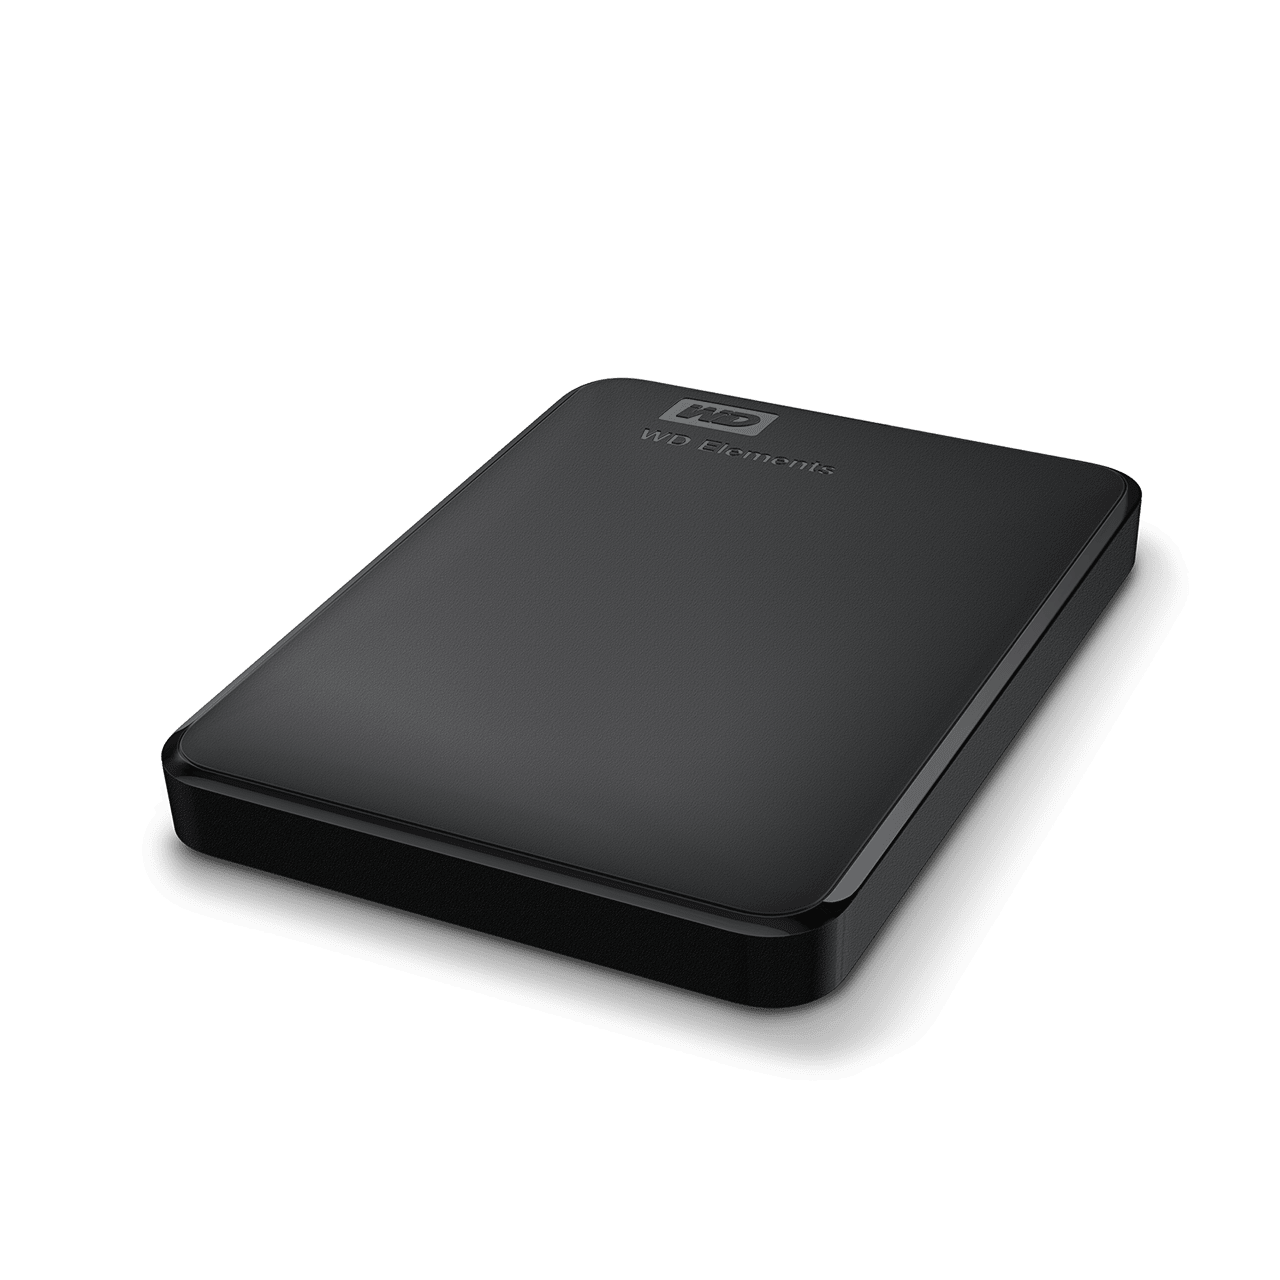 wd-elements-portable-1-2tb-end.png.thumb.1280.1280